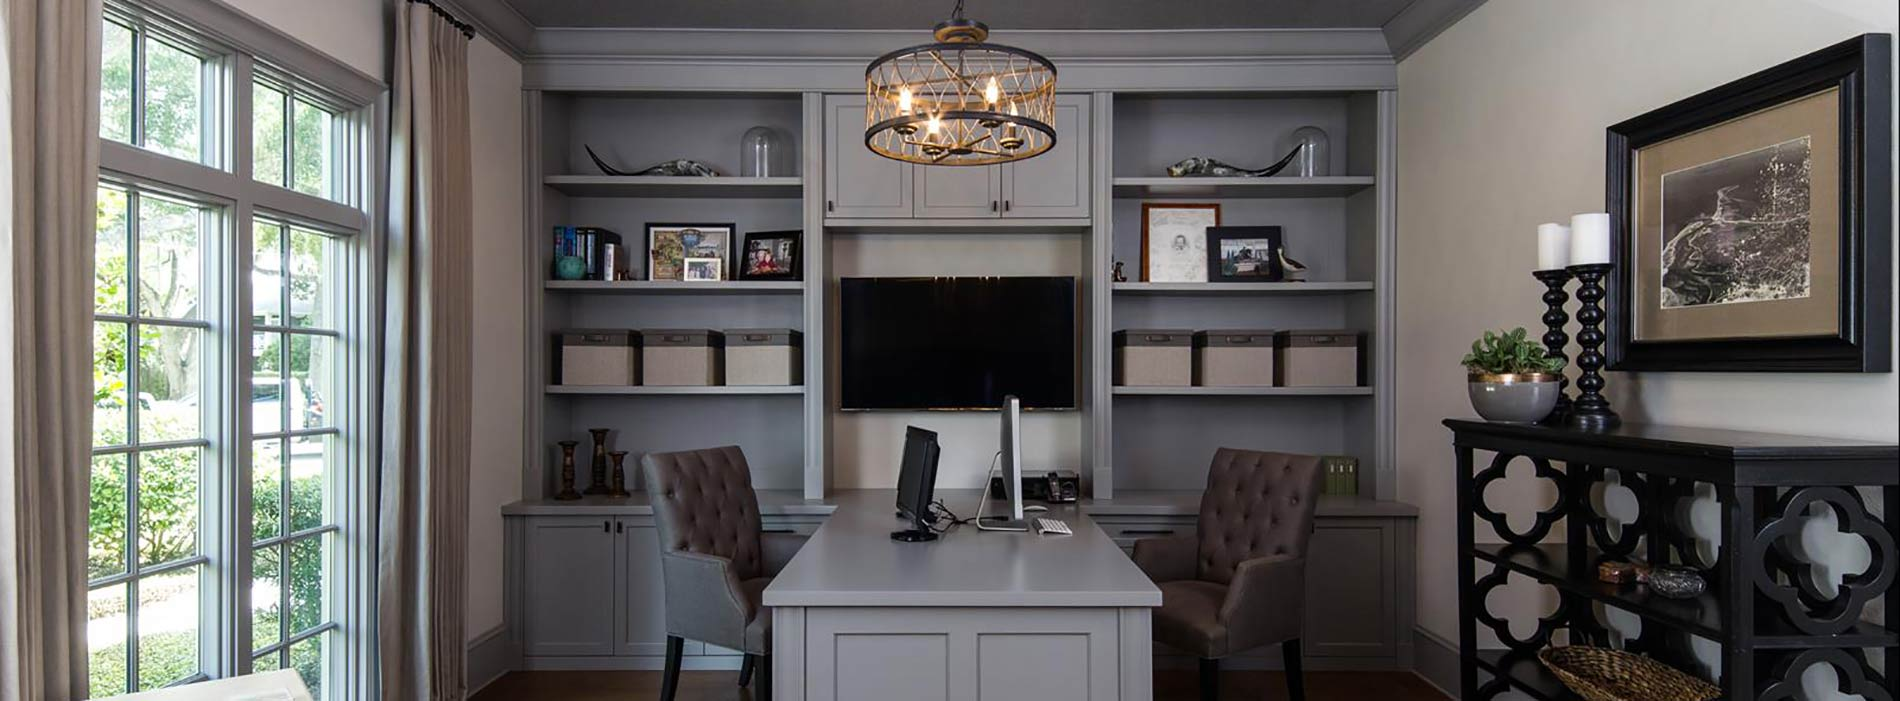 Greentree-Office-1900x700